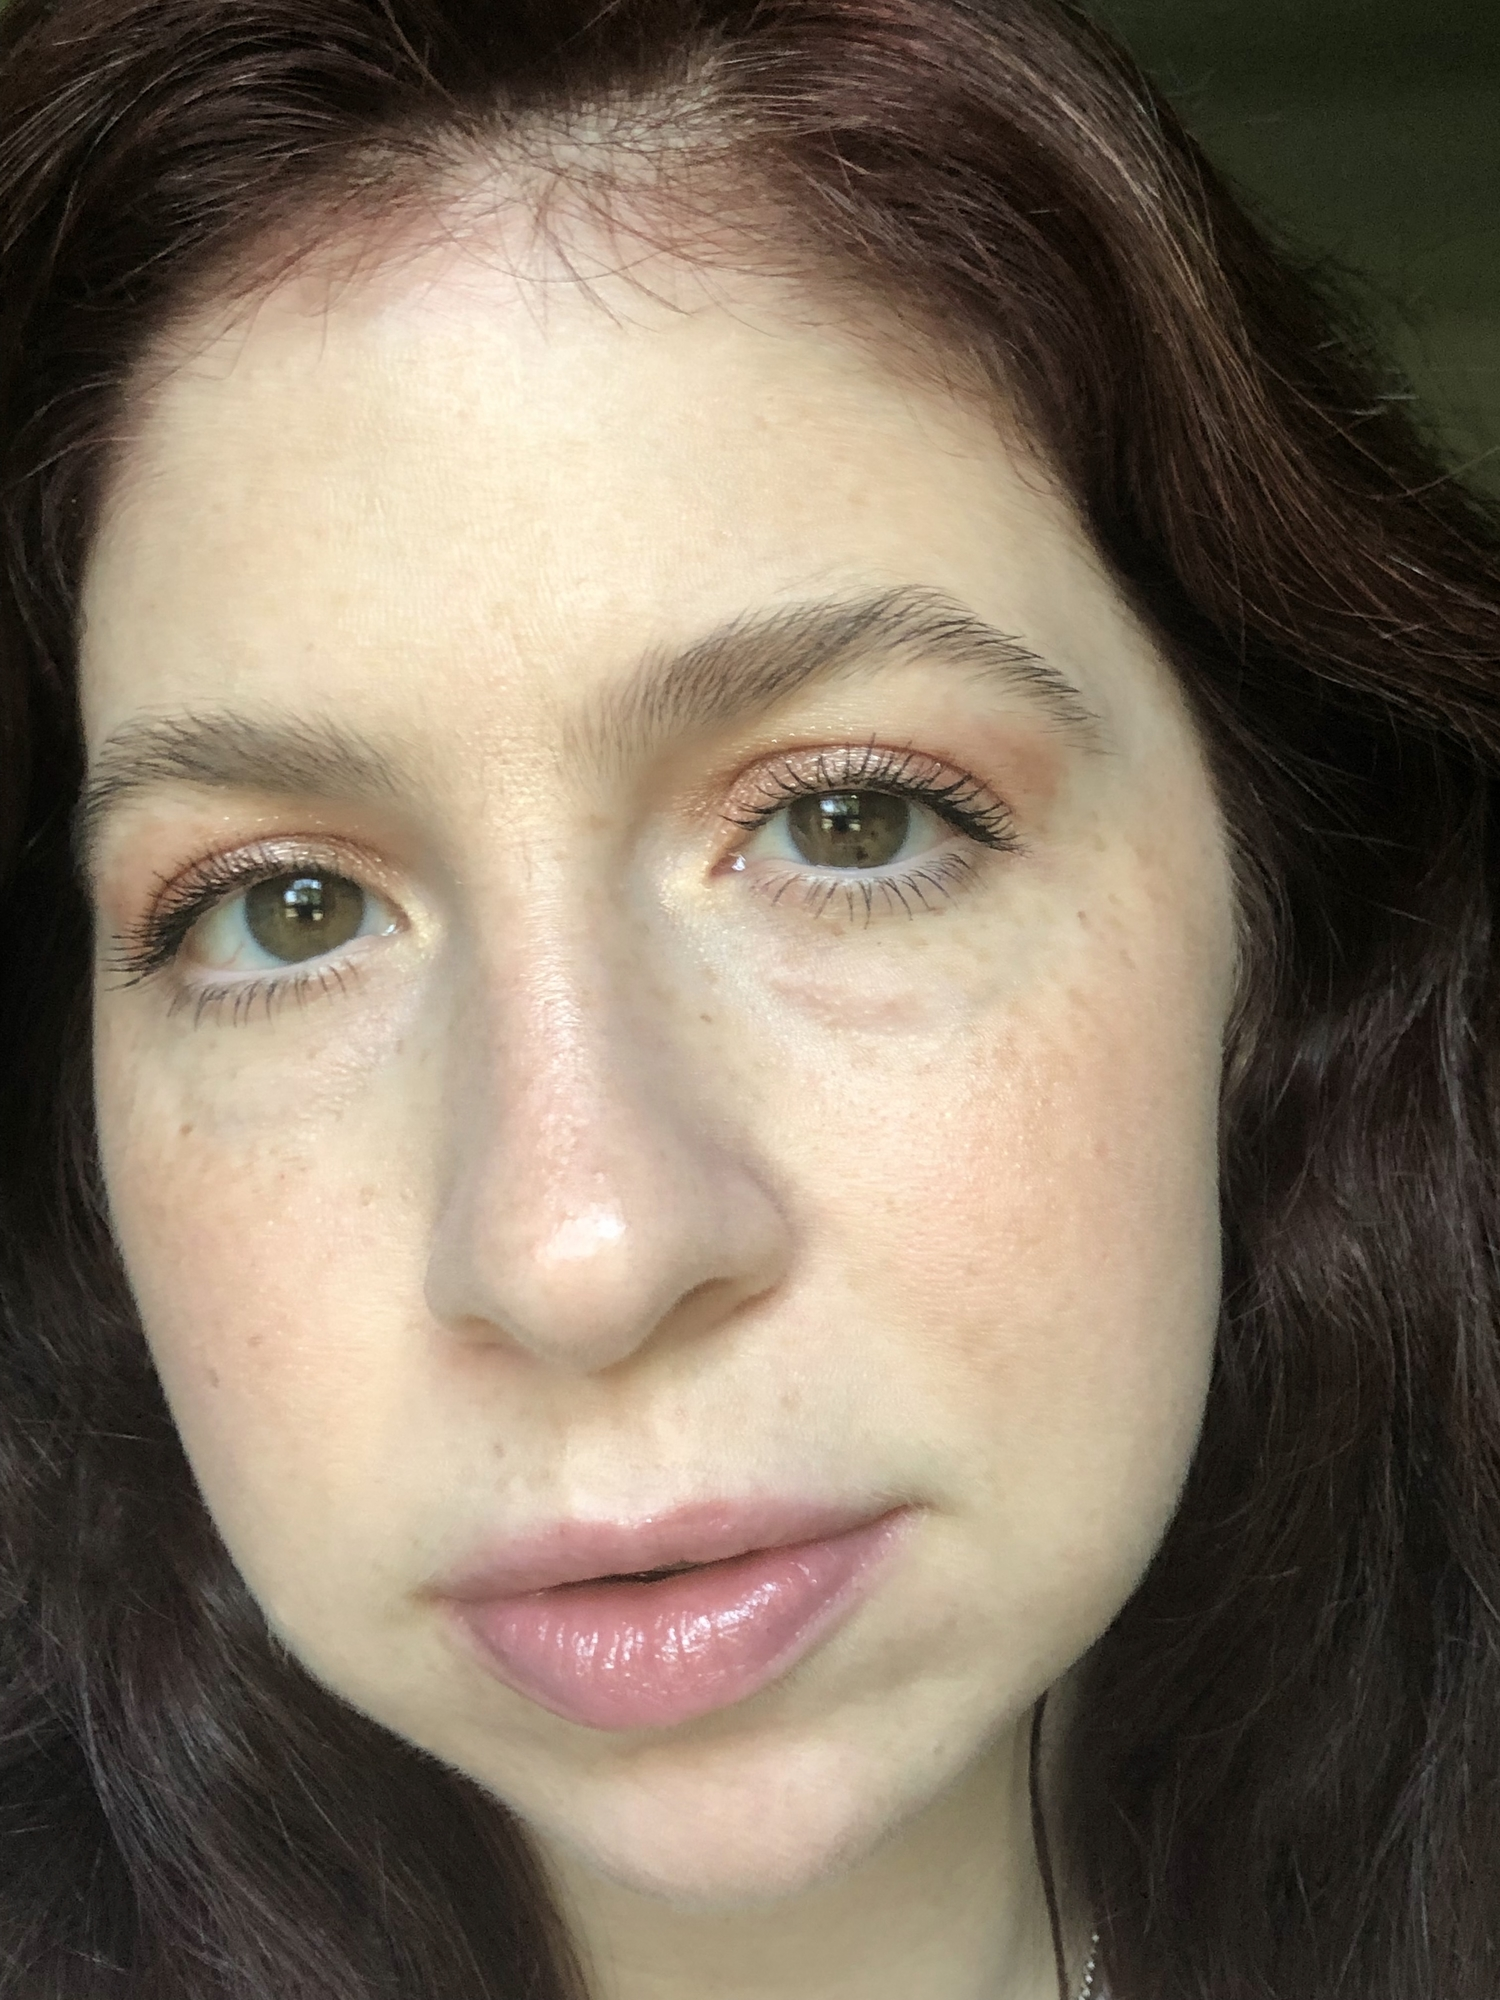 Rosy makeup look wearing products from an indie, female-owned brand